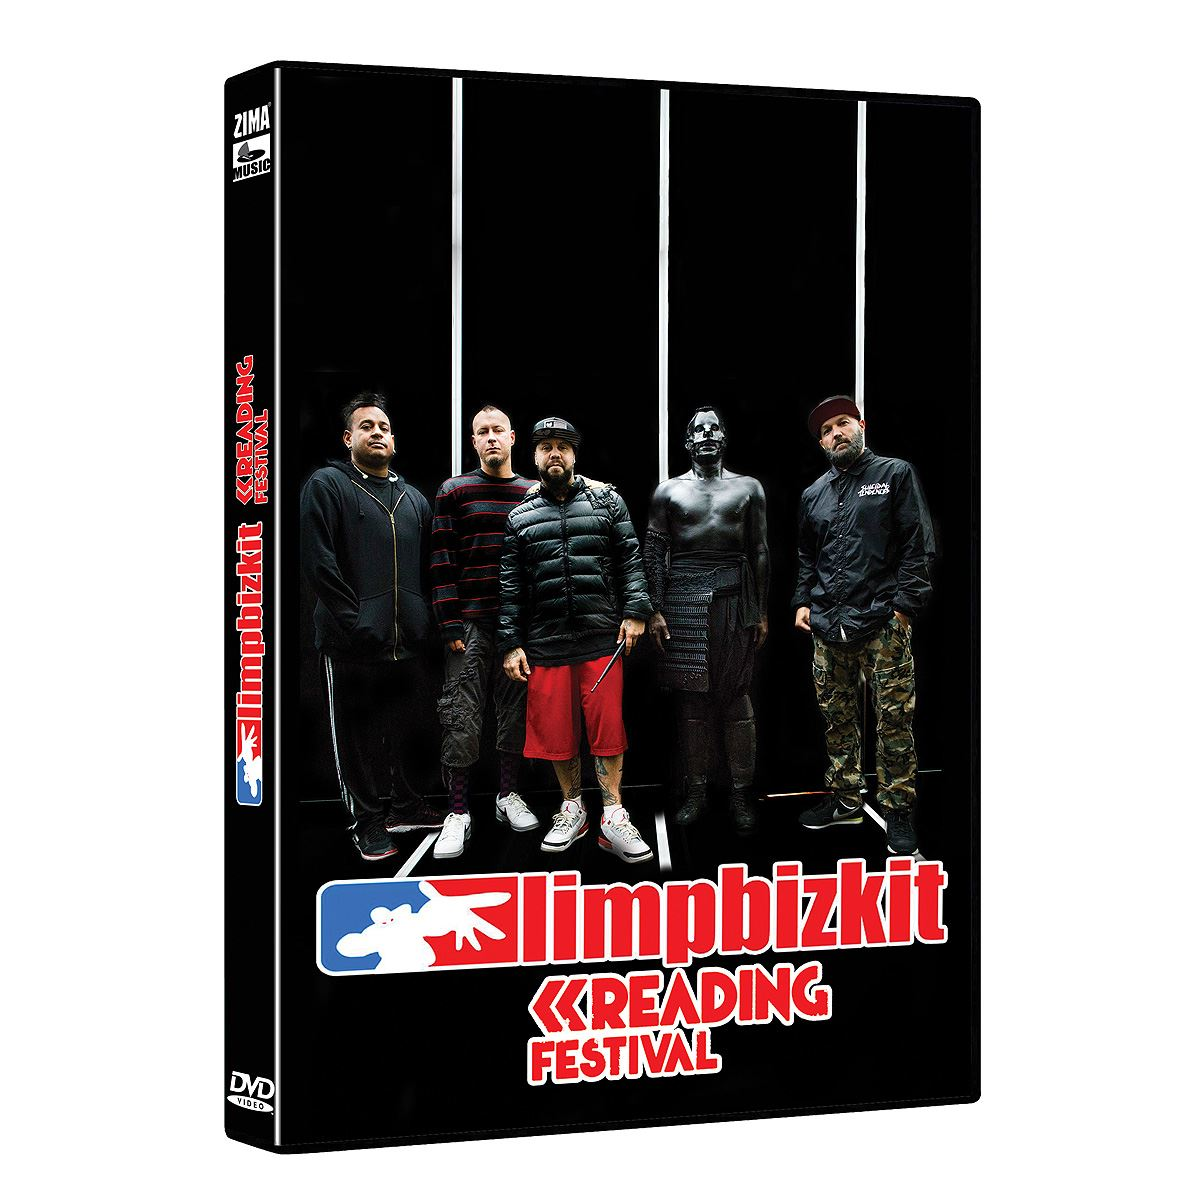 Dvd limp bizkit - reading festival  - Sanborns